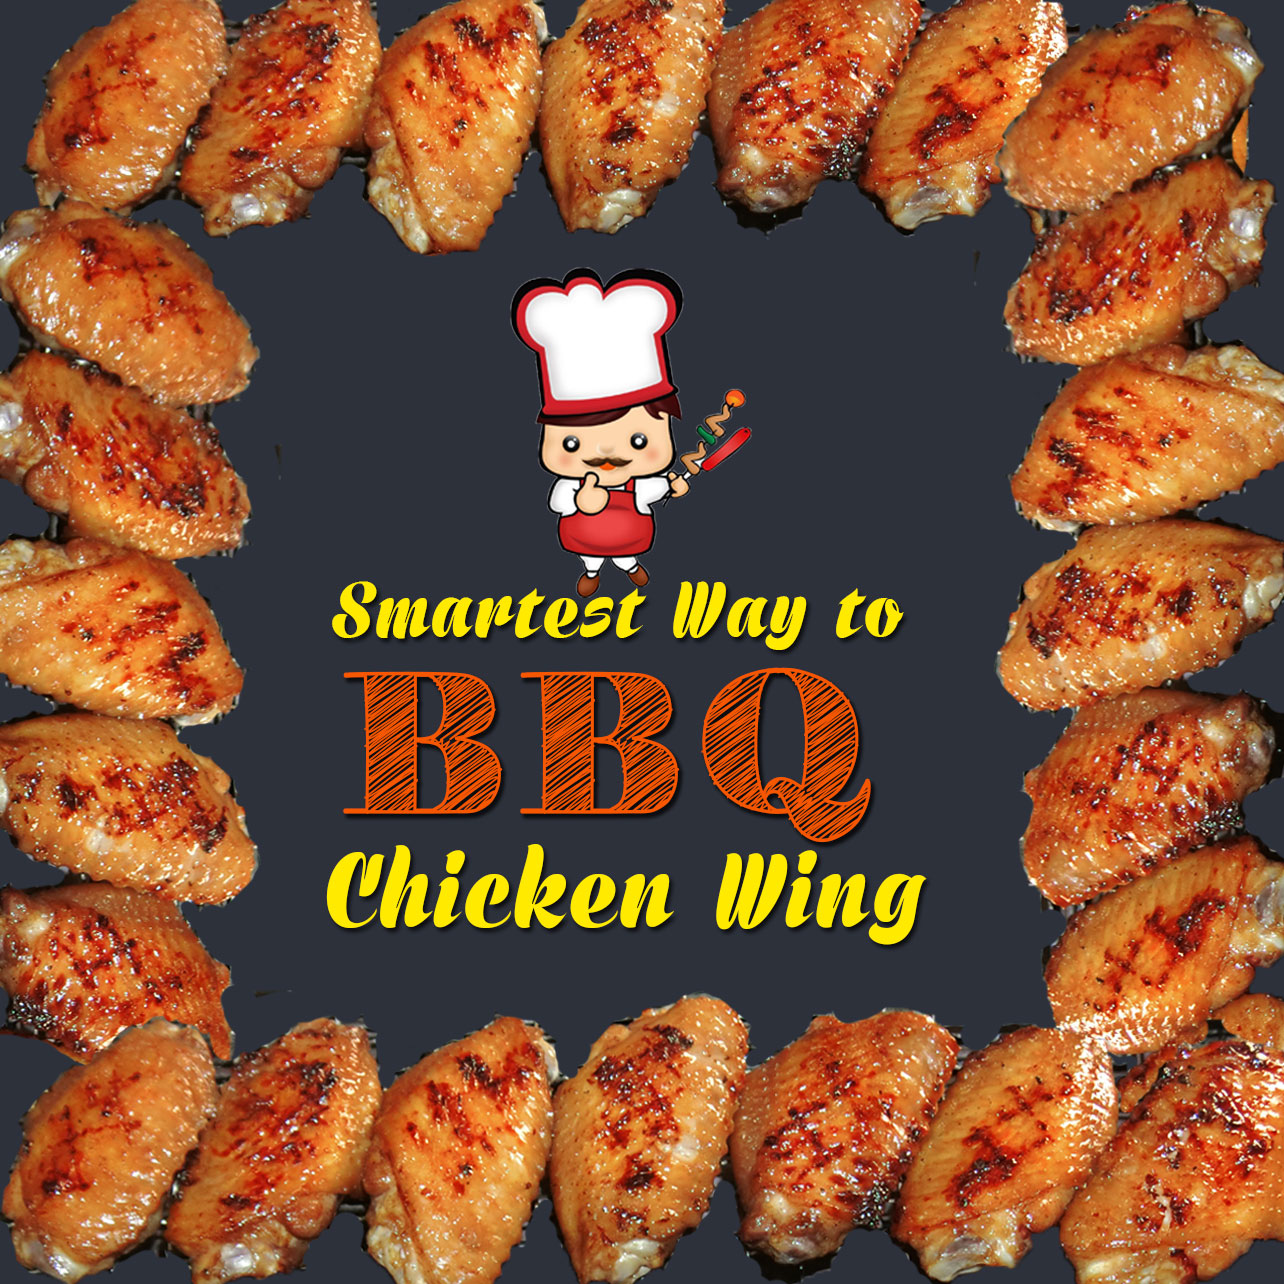 How-to-BBQ-Chicken-Wing-BBQ-Wholesale-Frankel